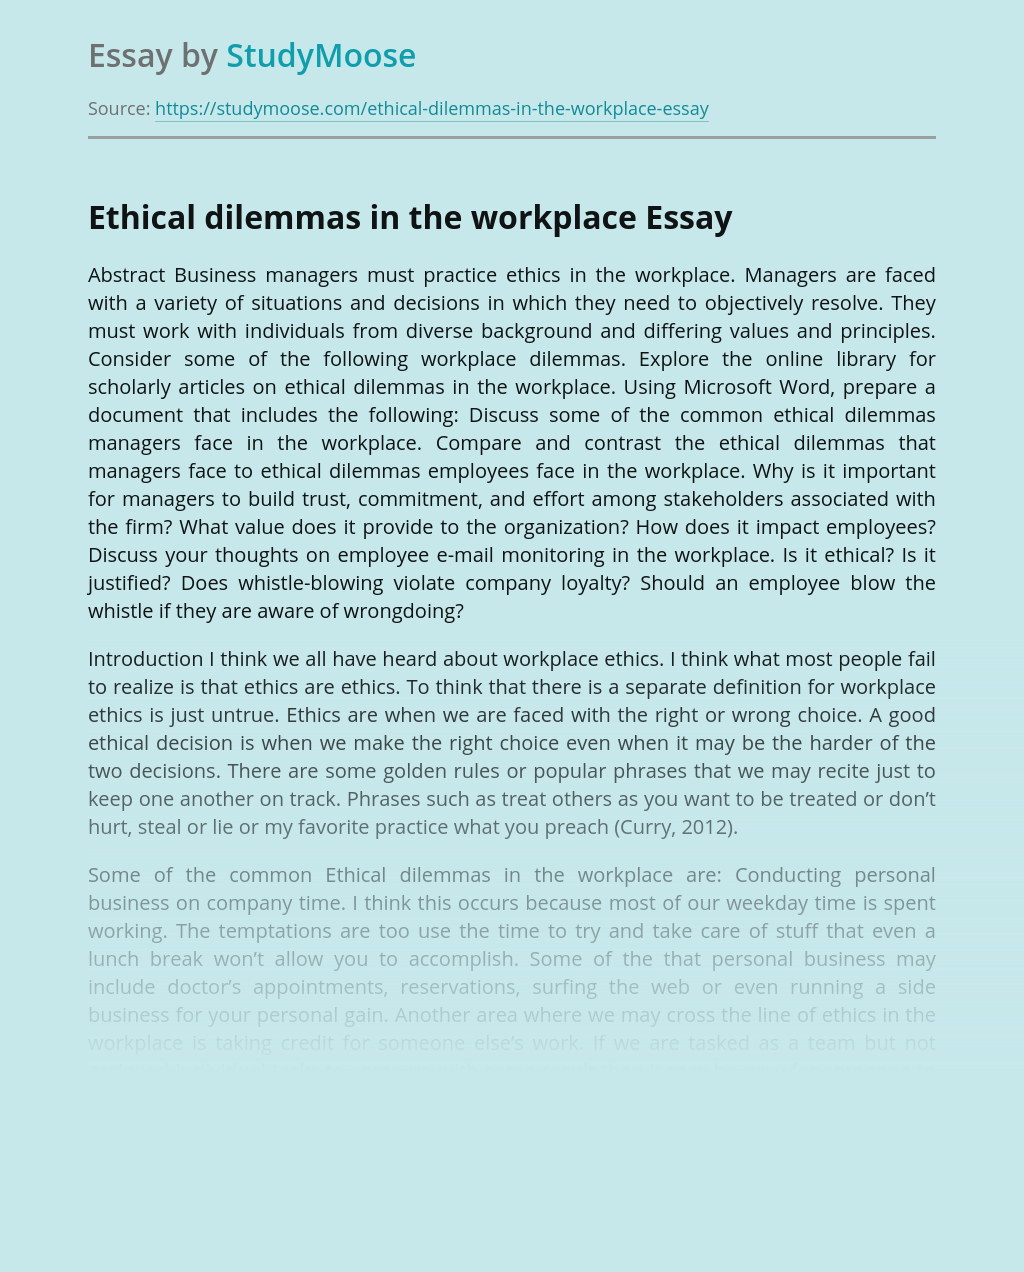 Ethical dilemmas in the workplace